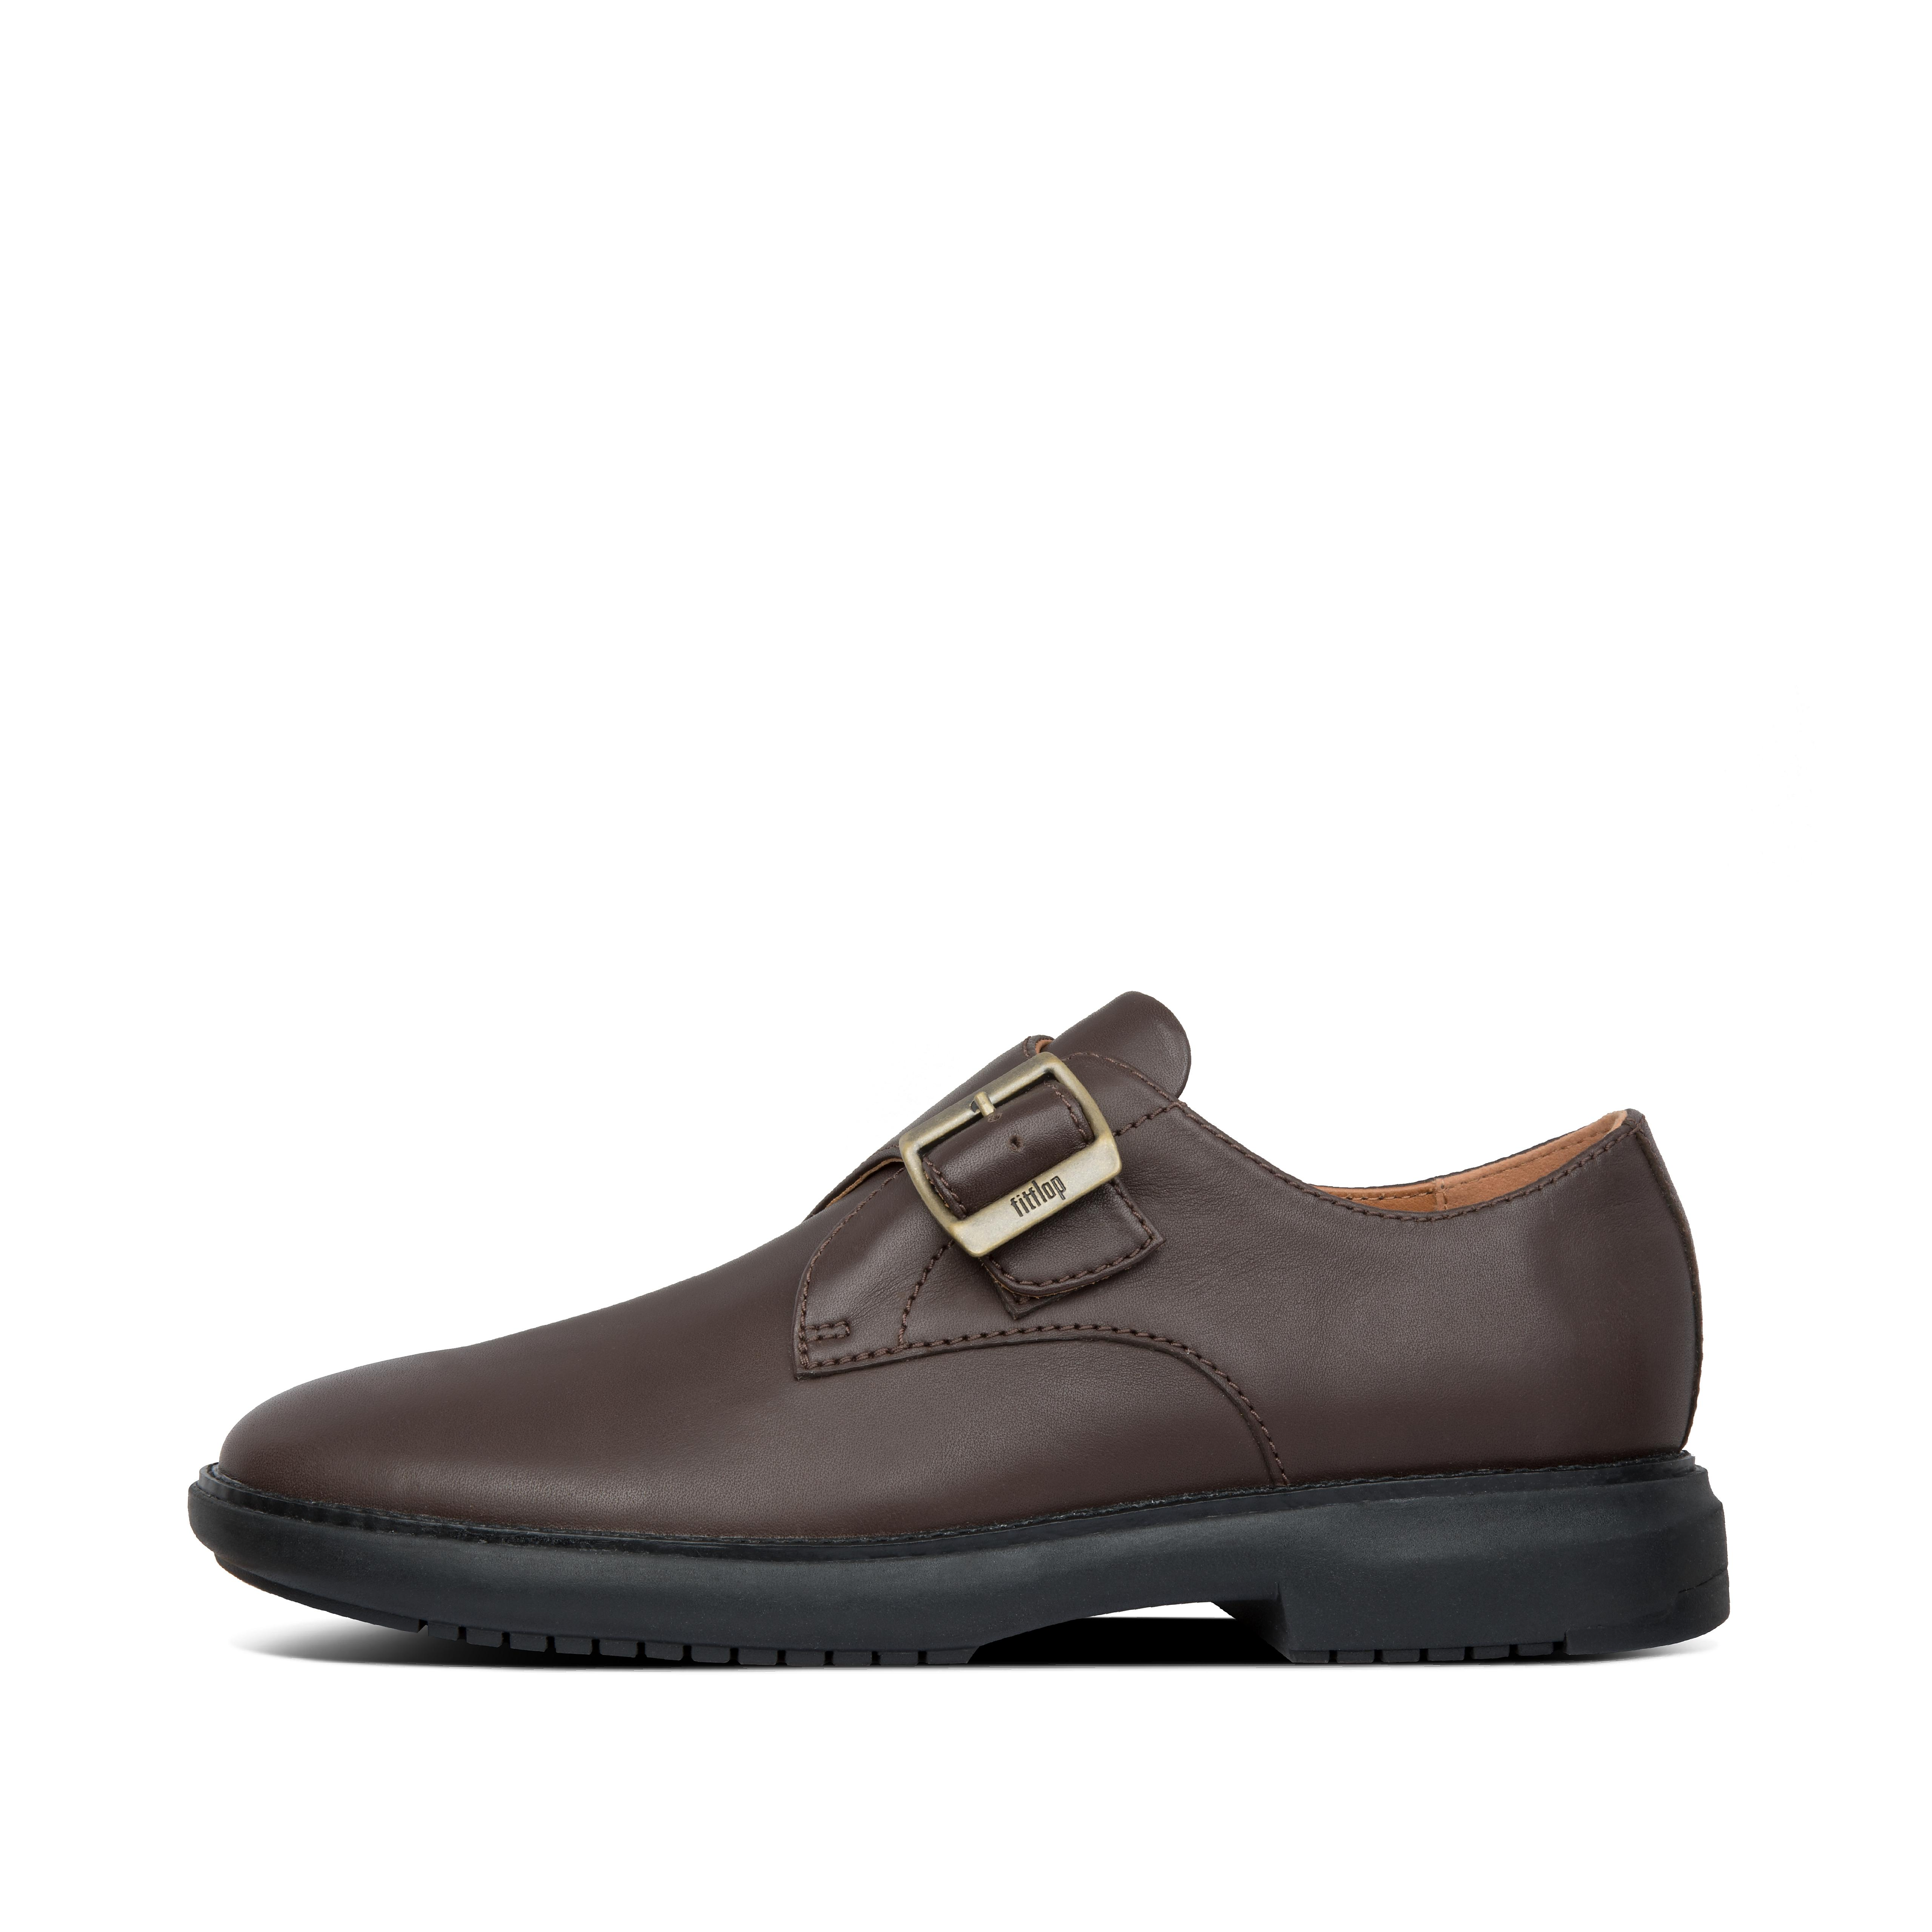 Popular with stylish guys after something a bit different, monk straps are a classic alternative to laced dress shoes. Our single-strap version retains the sleek dashing looks and smart heel, adding flair to almost any outfit. But you won\\\'t have to give up comfort - anatomical footbeds support your feet and our Dynamicush™ high-rebound cushioning tech is hidden in those elegant soles. Isn\\\'t it time you joined the order of the monk strap?